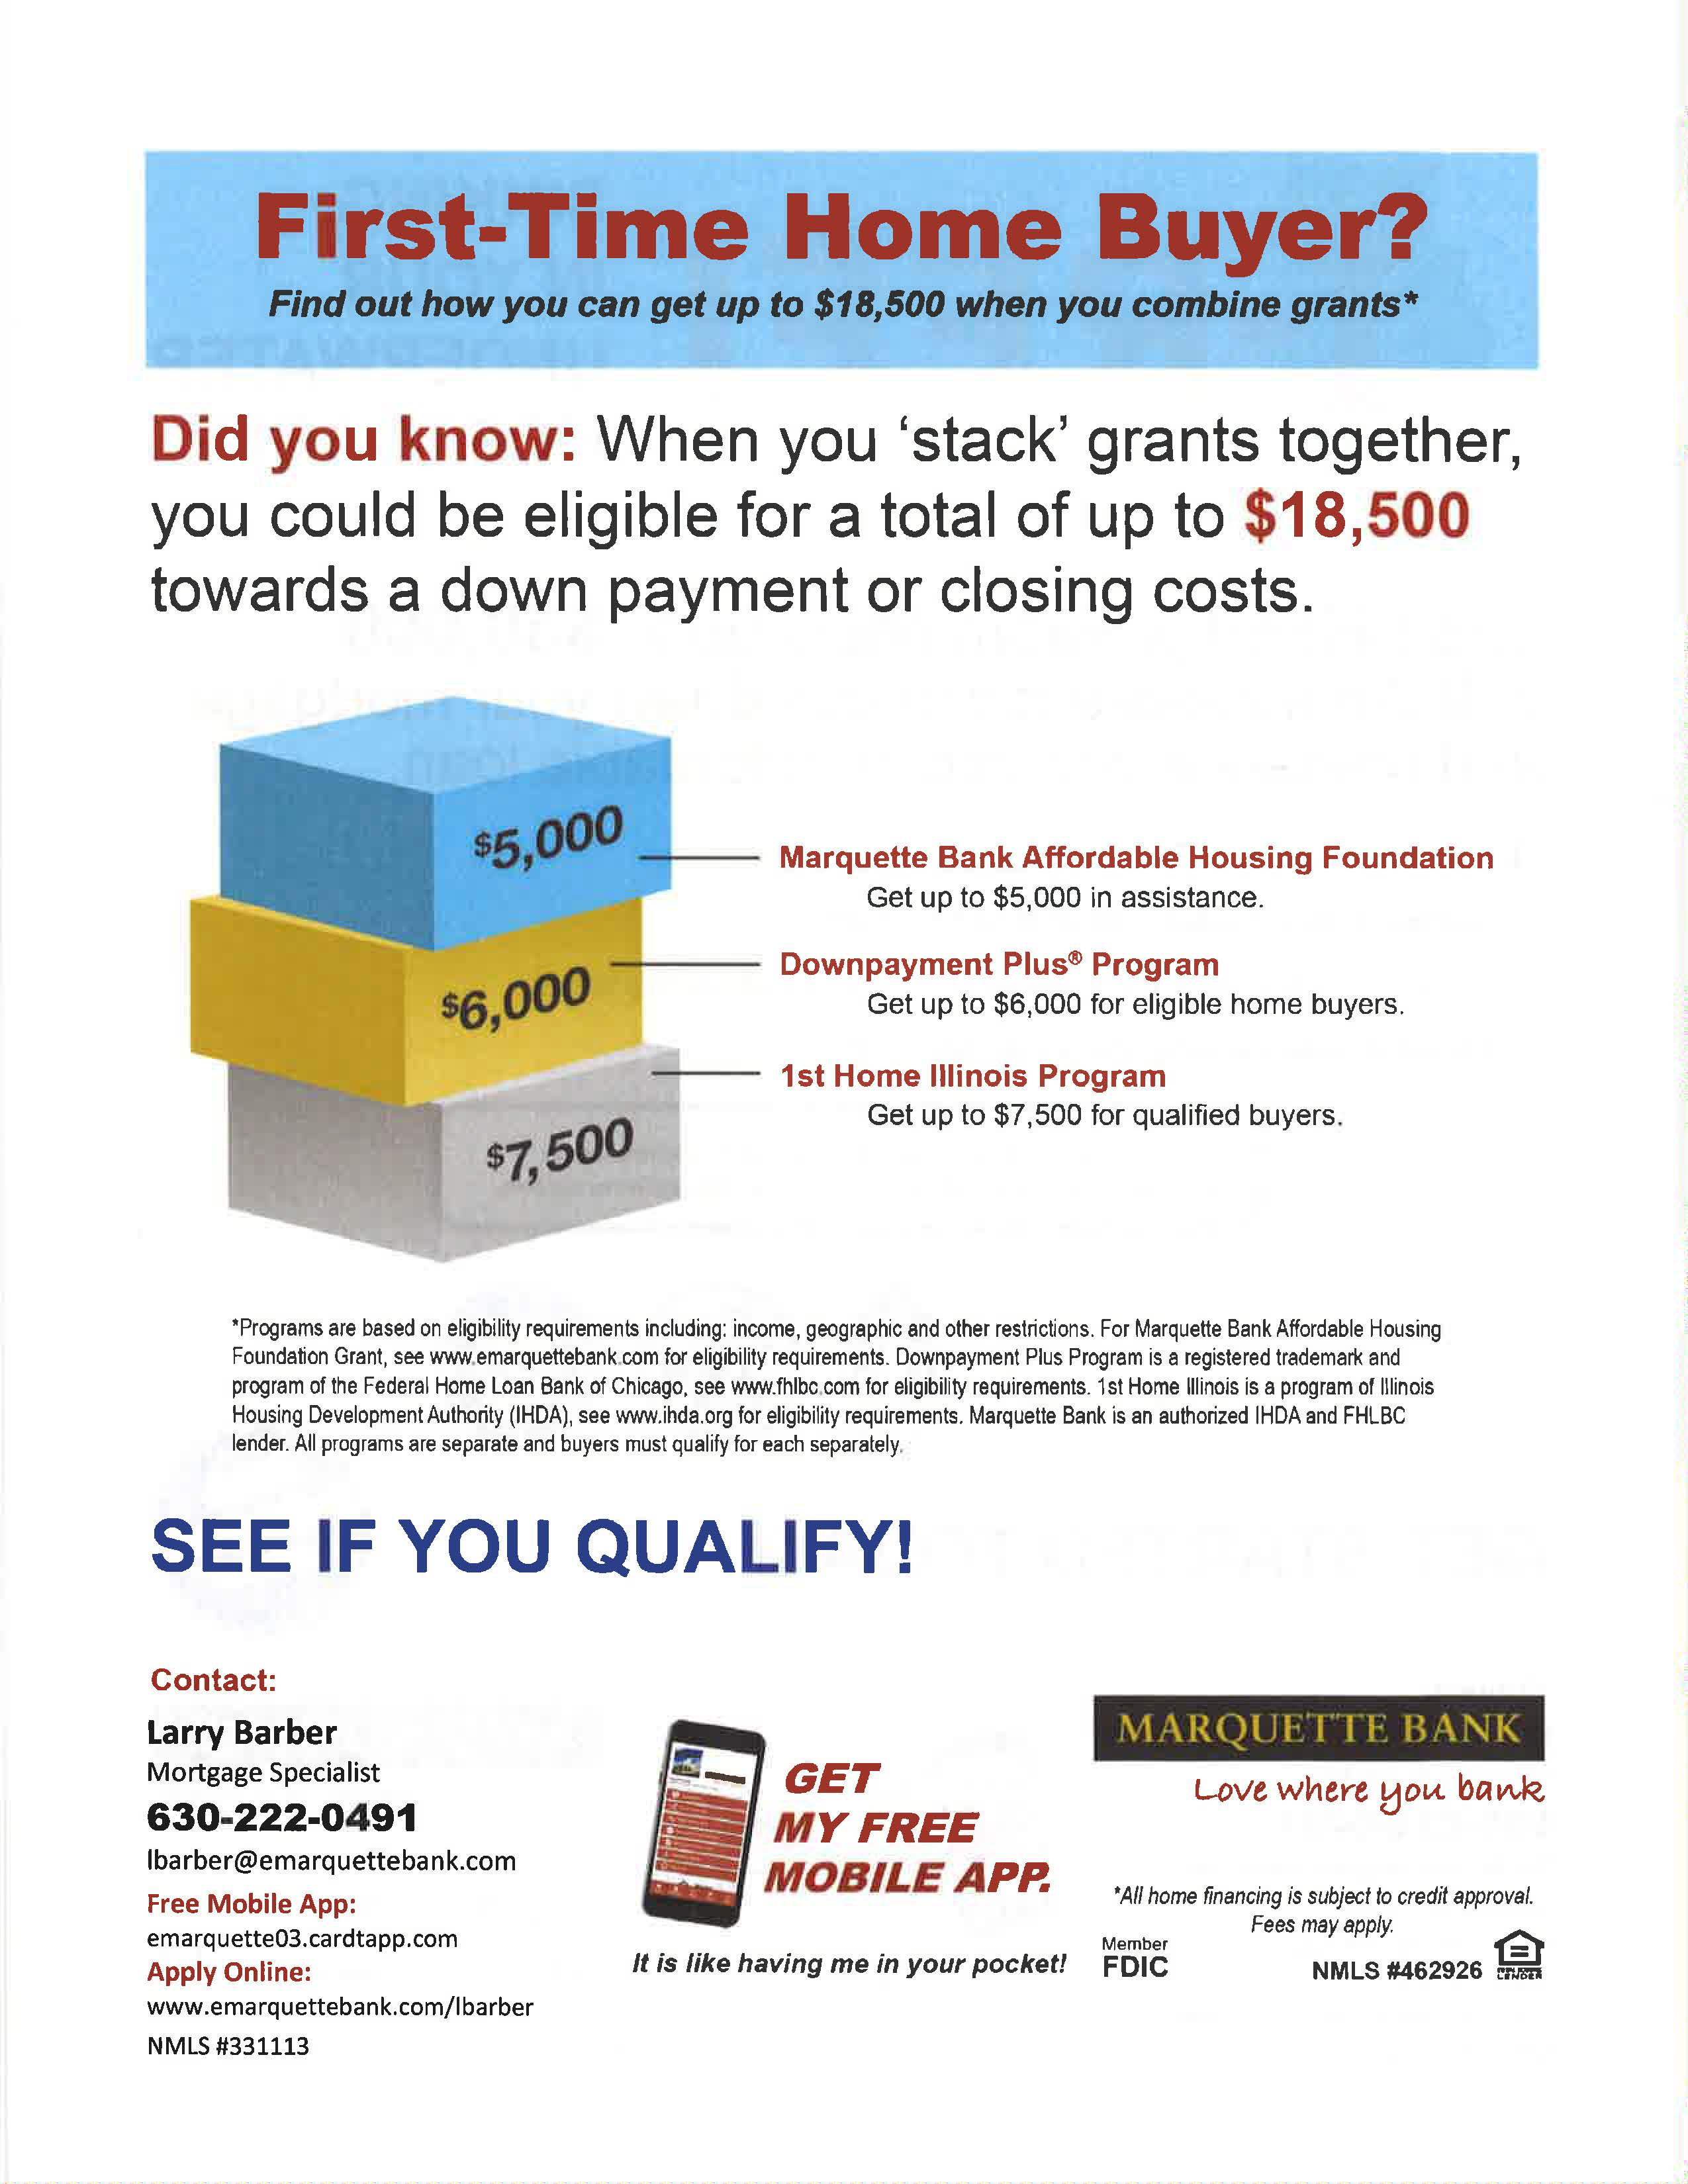 Flyer for Marquette Bank Stackable Grants Promotion for First-time Homebuyers